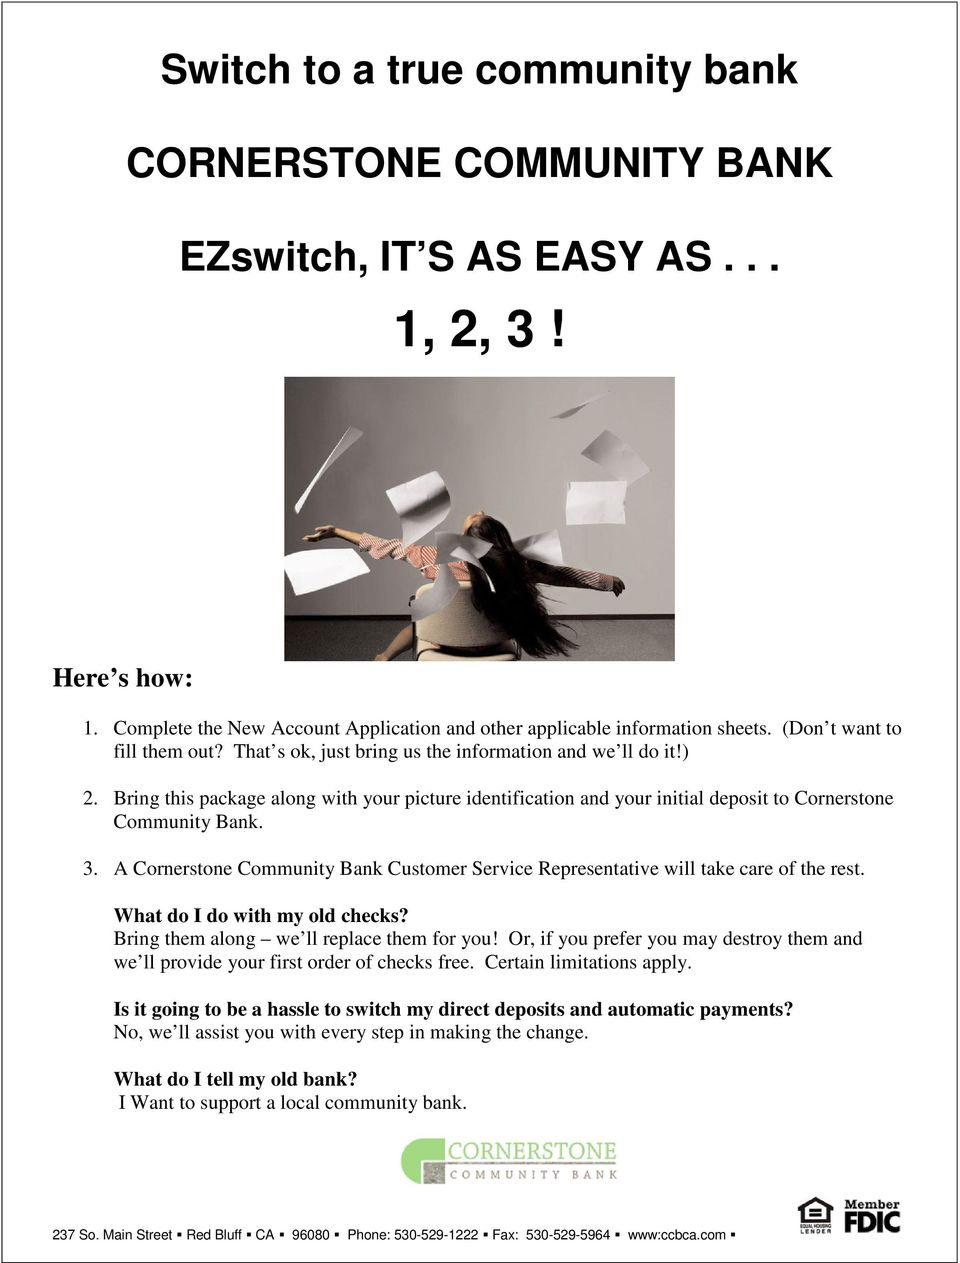 Bring this package along with your picture identification and your initial deposit to Cornerstone Community Bank. 3.